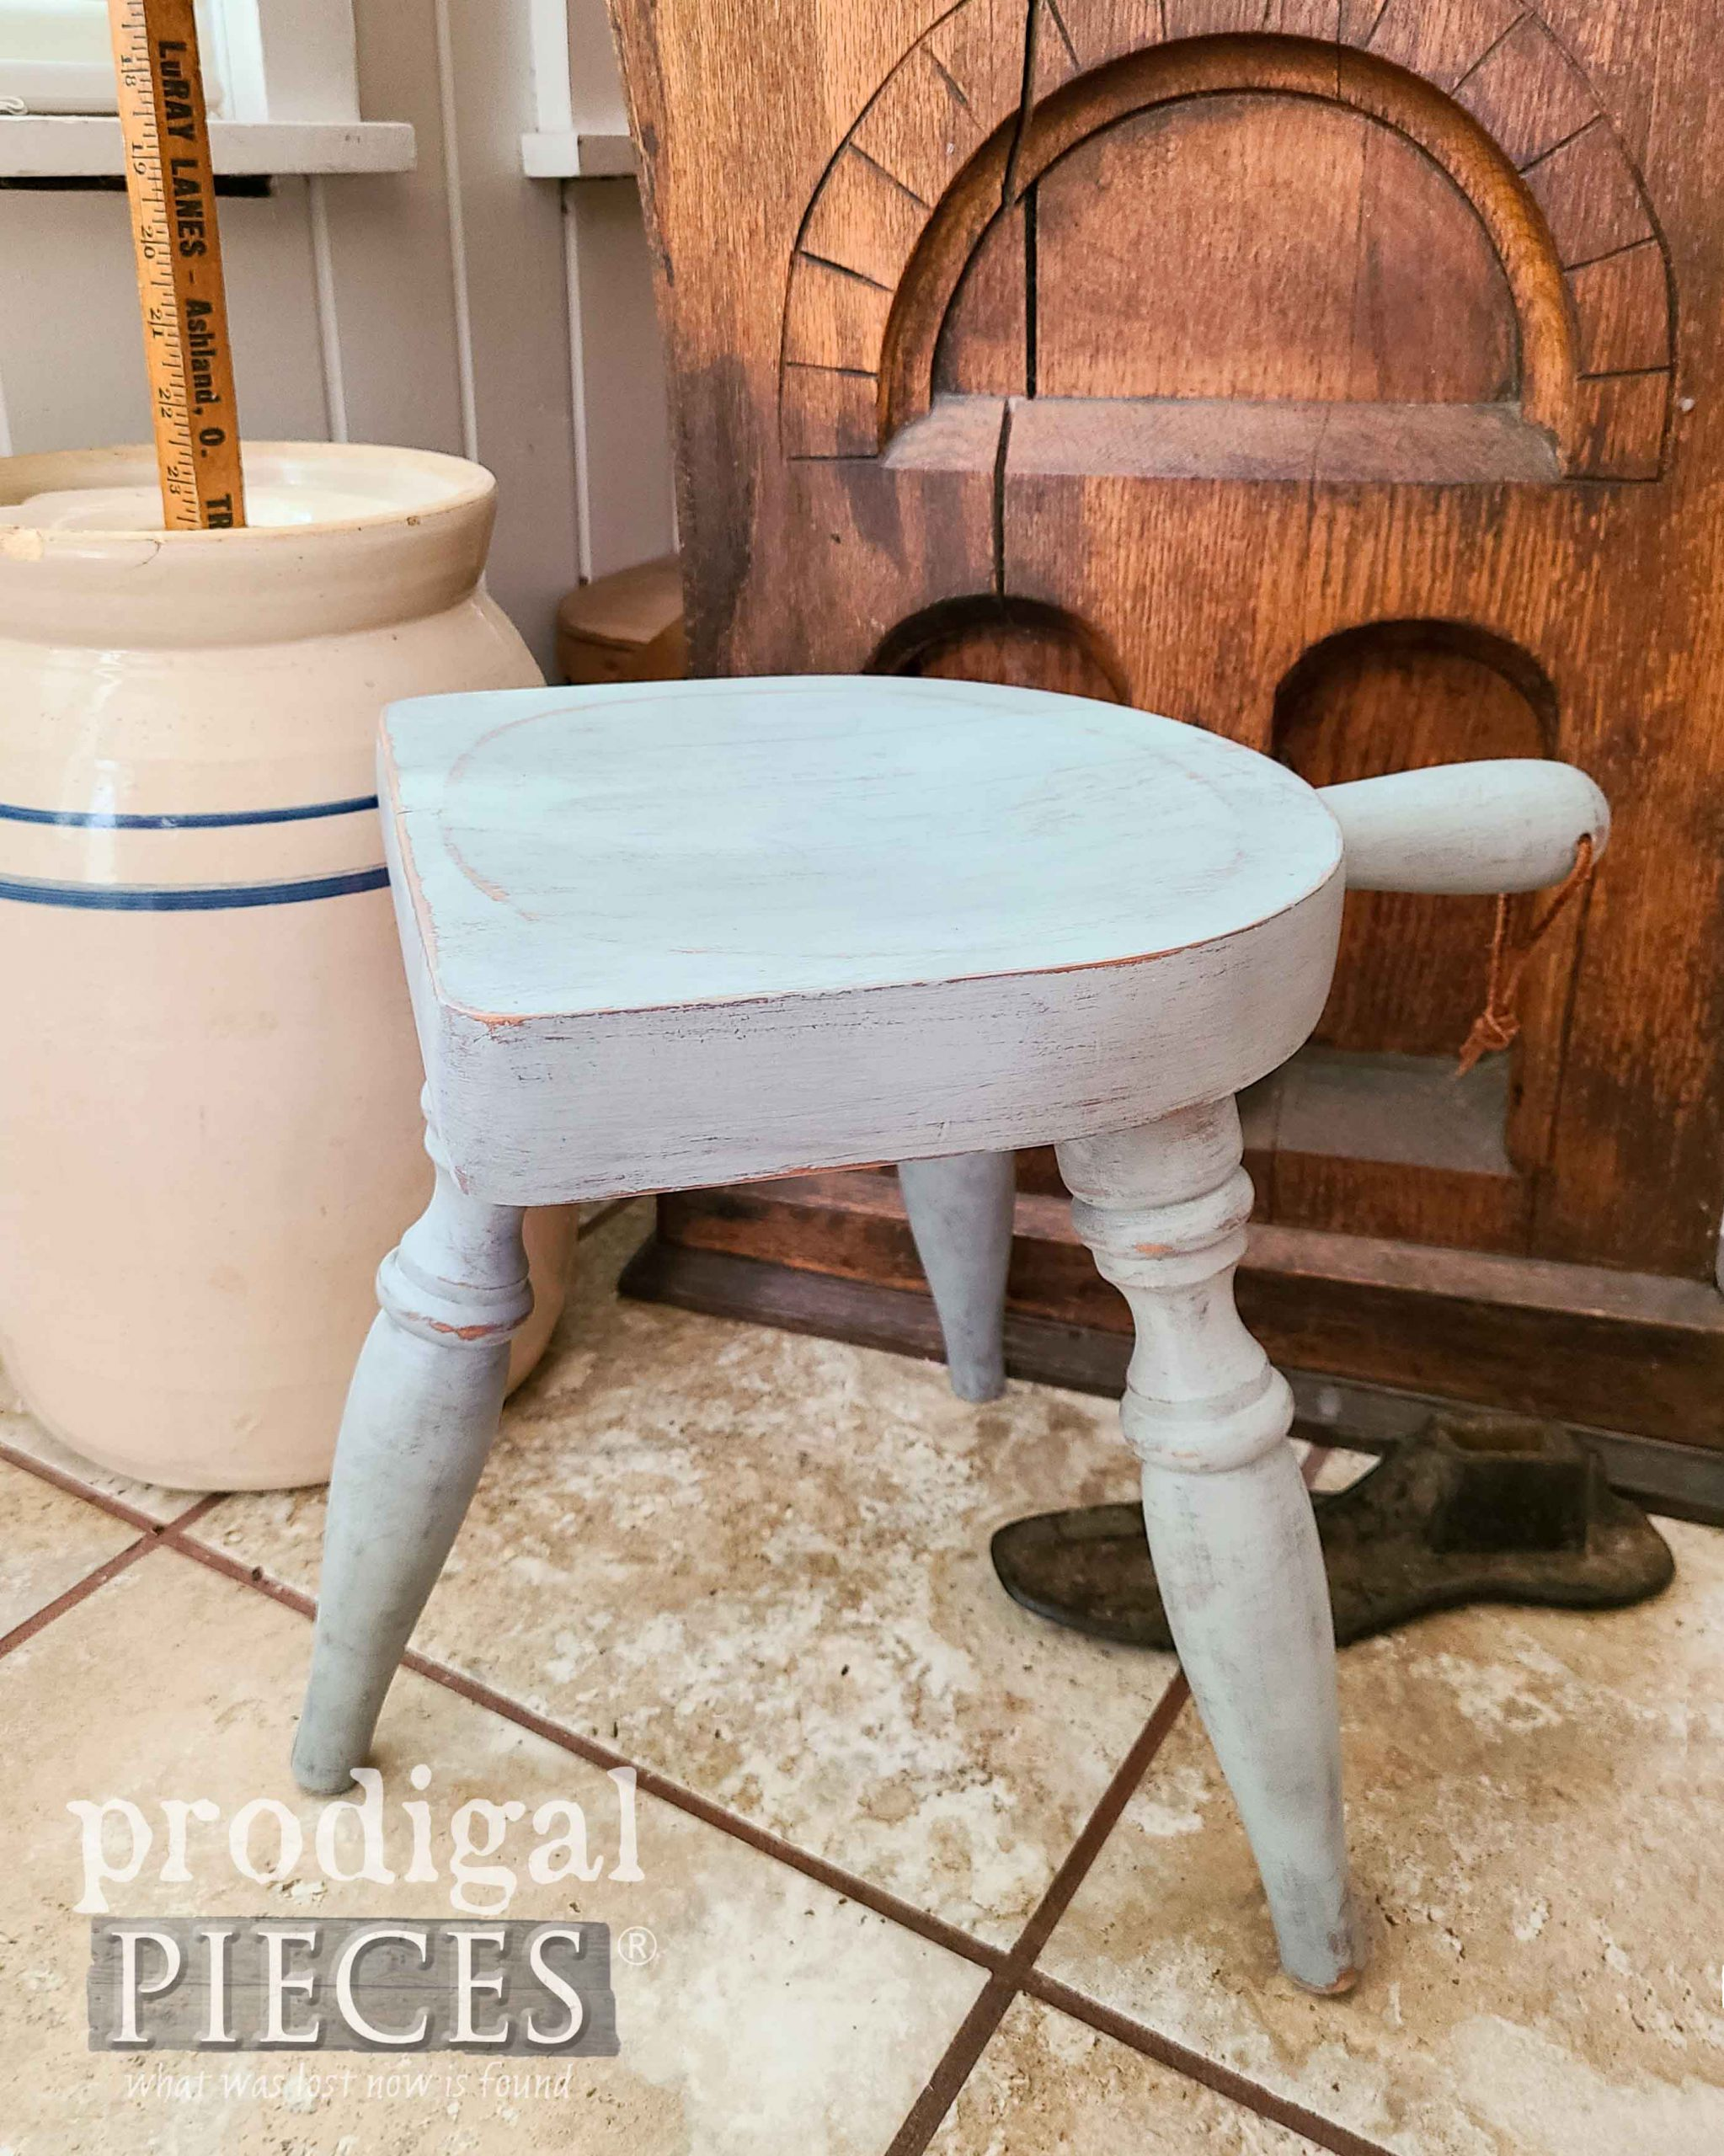 Blue Green Farmhouse Milking Stool | prodigalpieces.com #prodigalpieces #vintage #farmhouse